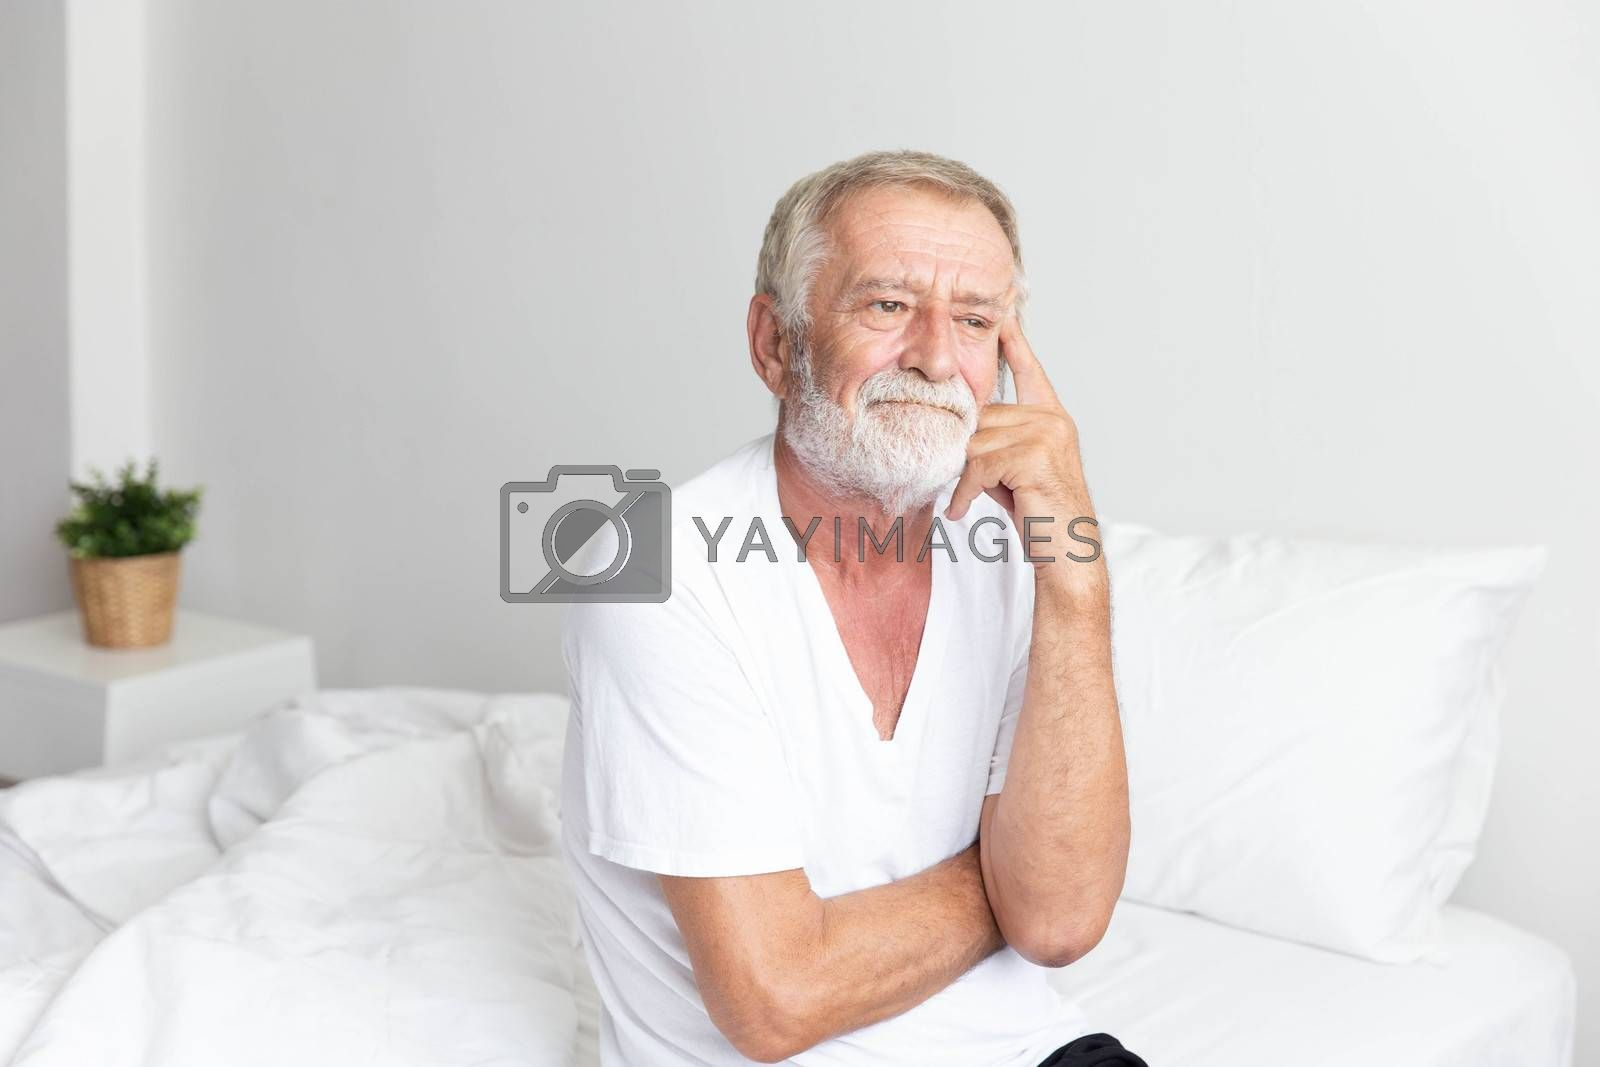 Portrait of a senior retirement man sitting and thinking alone on bed in his home